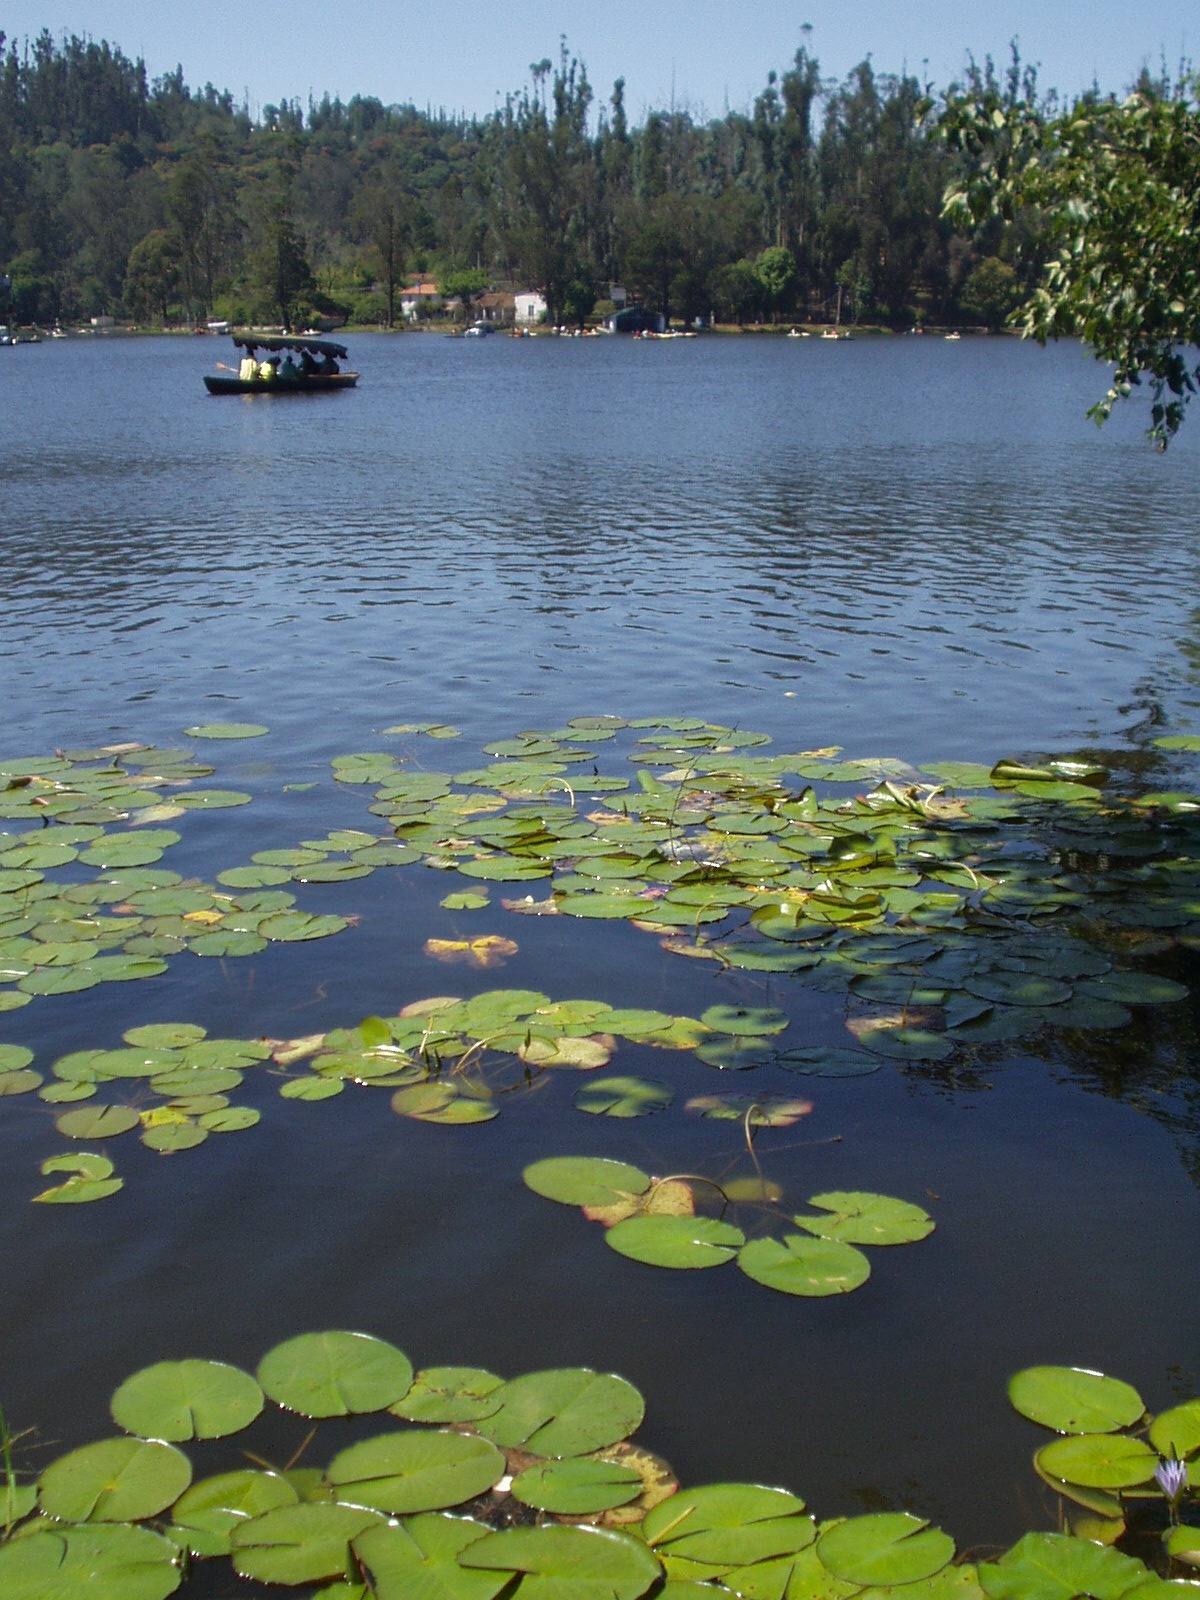 Kodaikanal India  city photos gallery : Original file ‎ 1,200 × 1,600 pixels, file size: 580 KB, MIME type ...